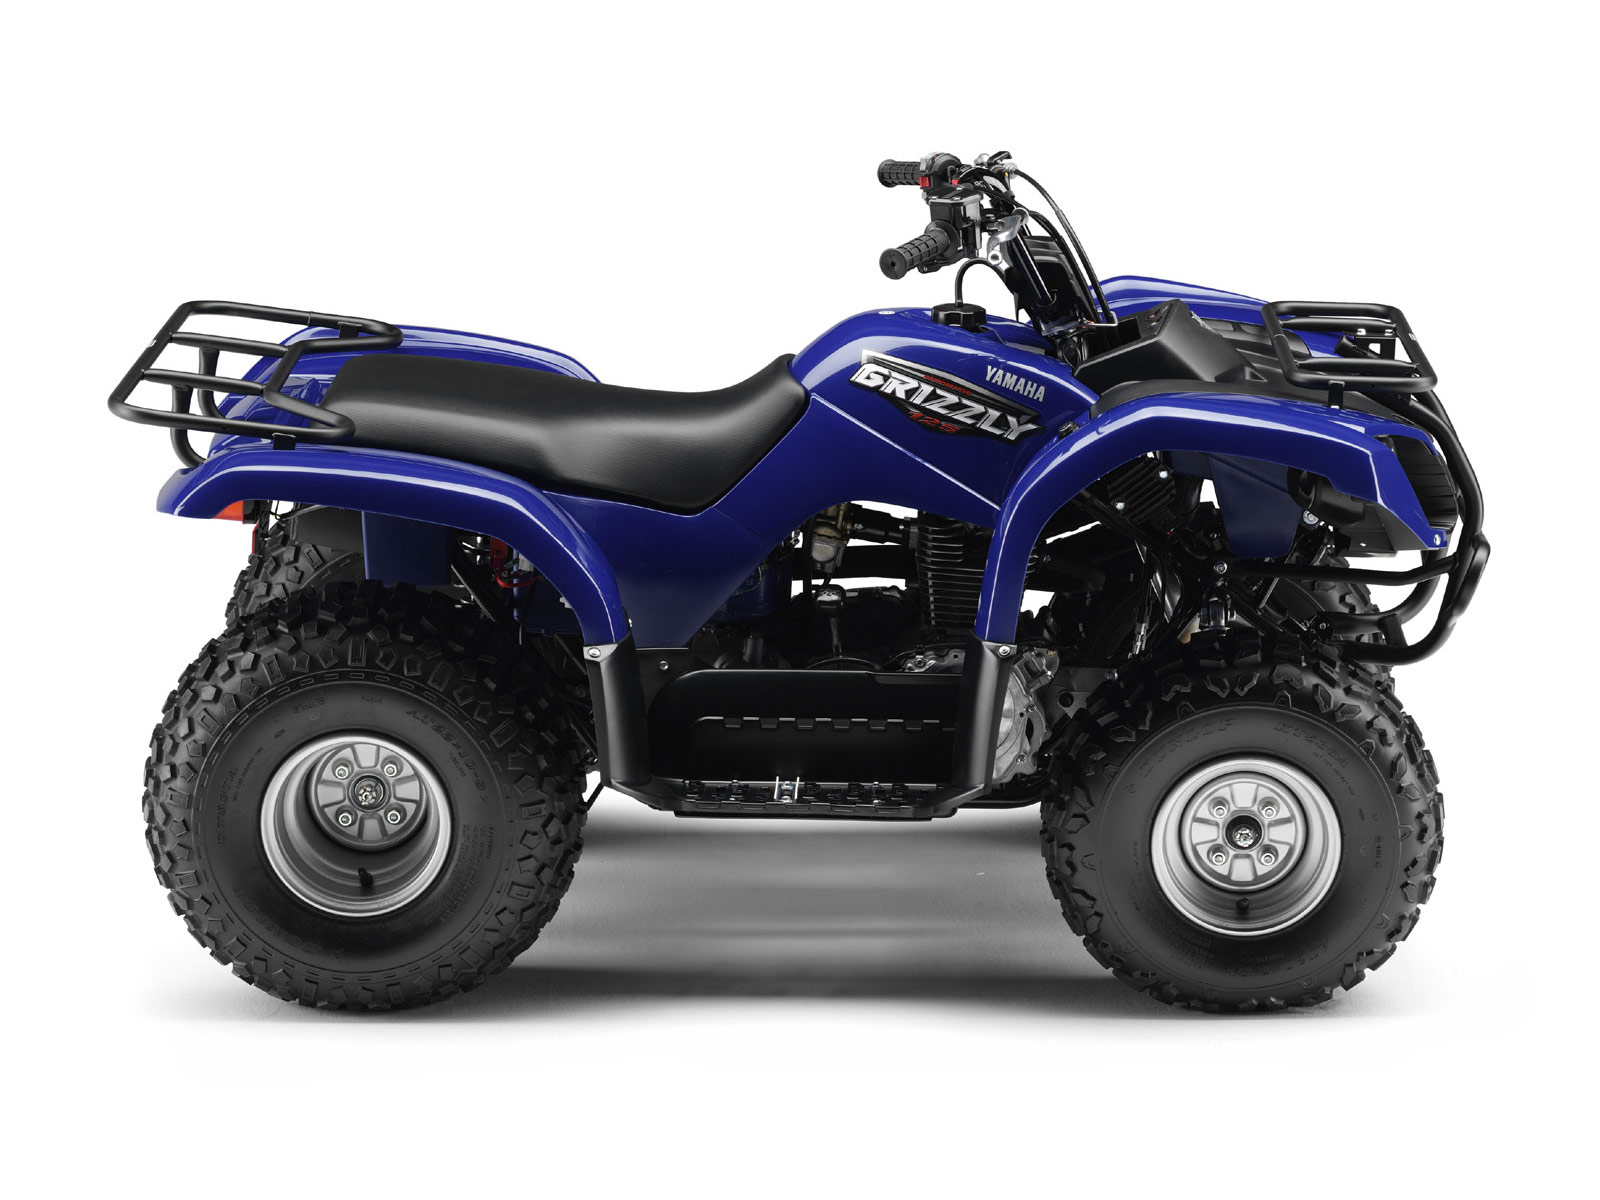 06 yamaha grizzly 125 wiring diagram